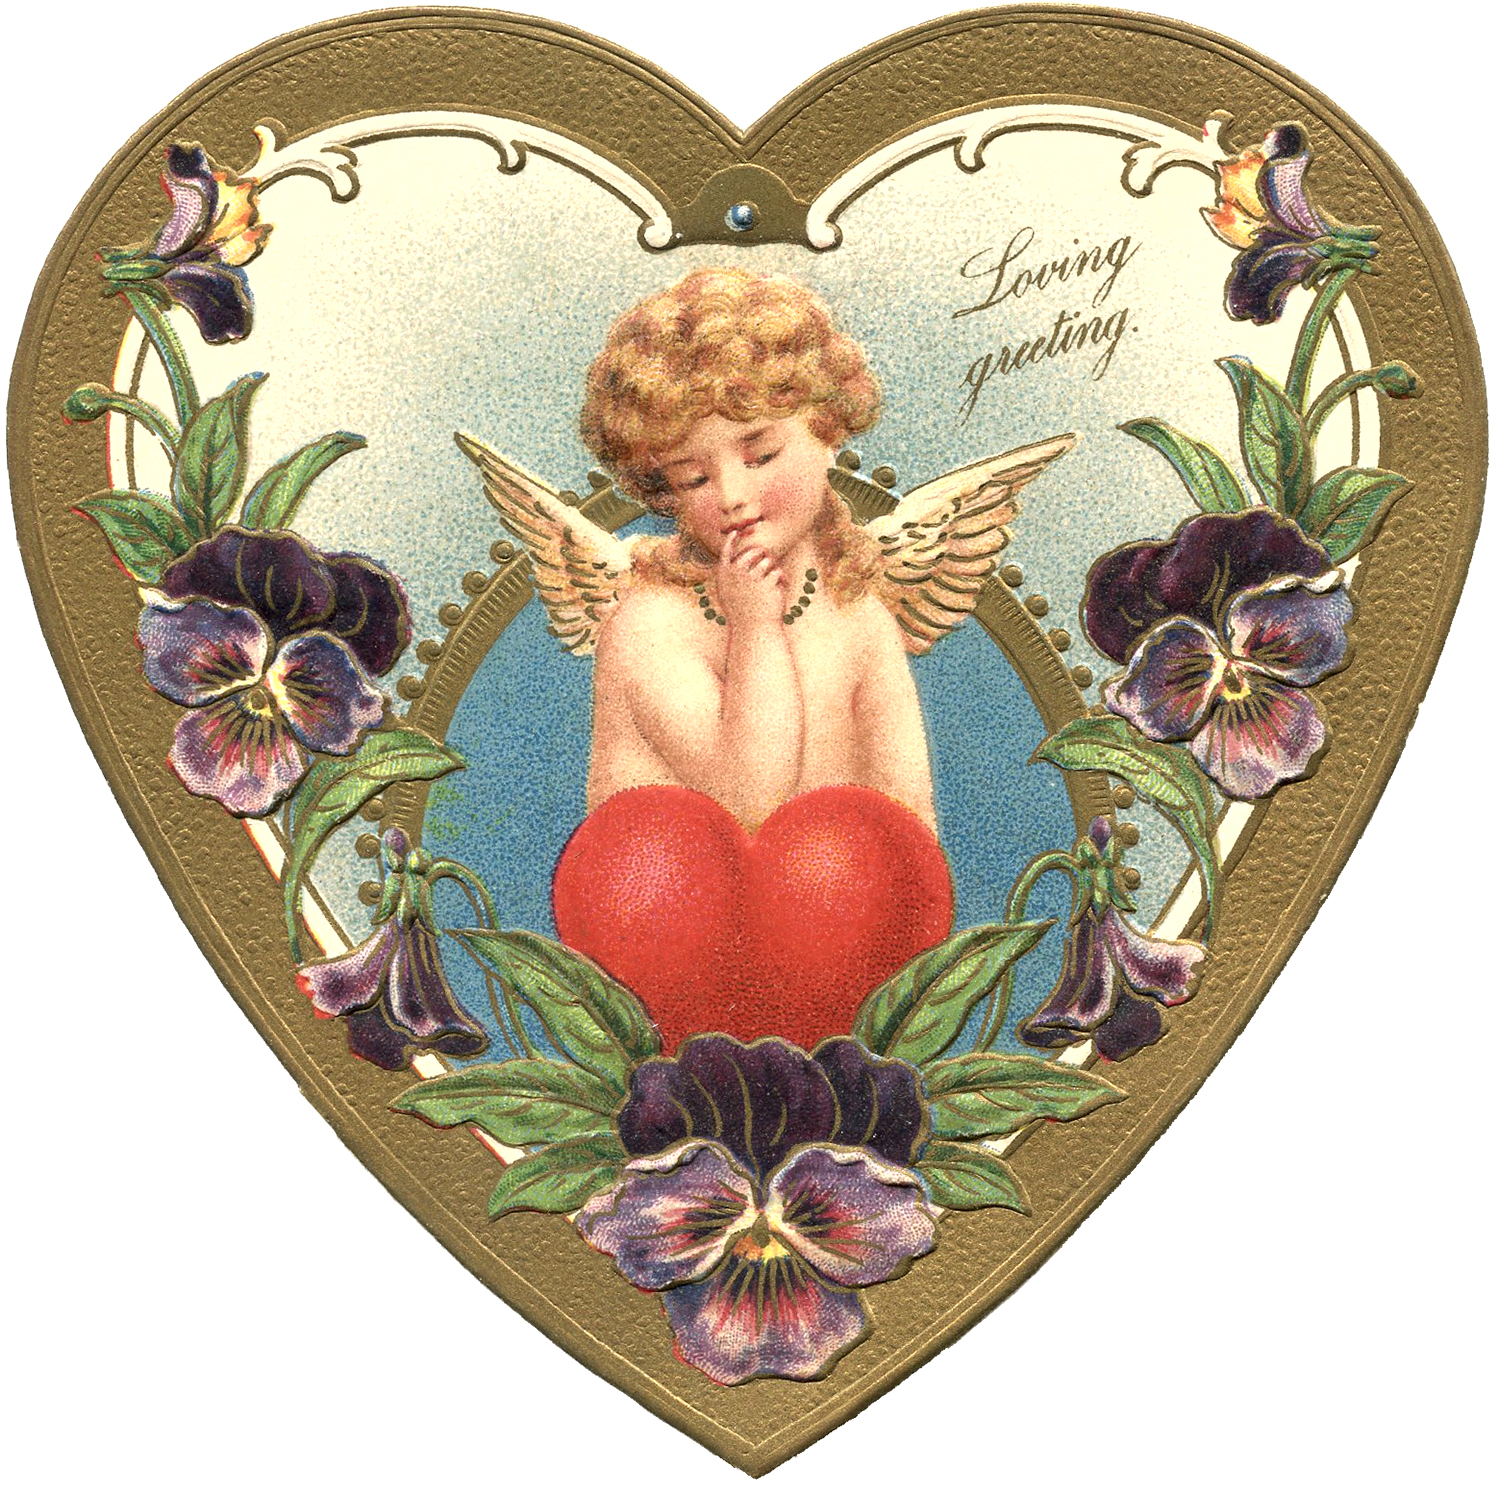 Victorian Valentine Image The Graphics Fairy – Victorian Valentine Card